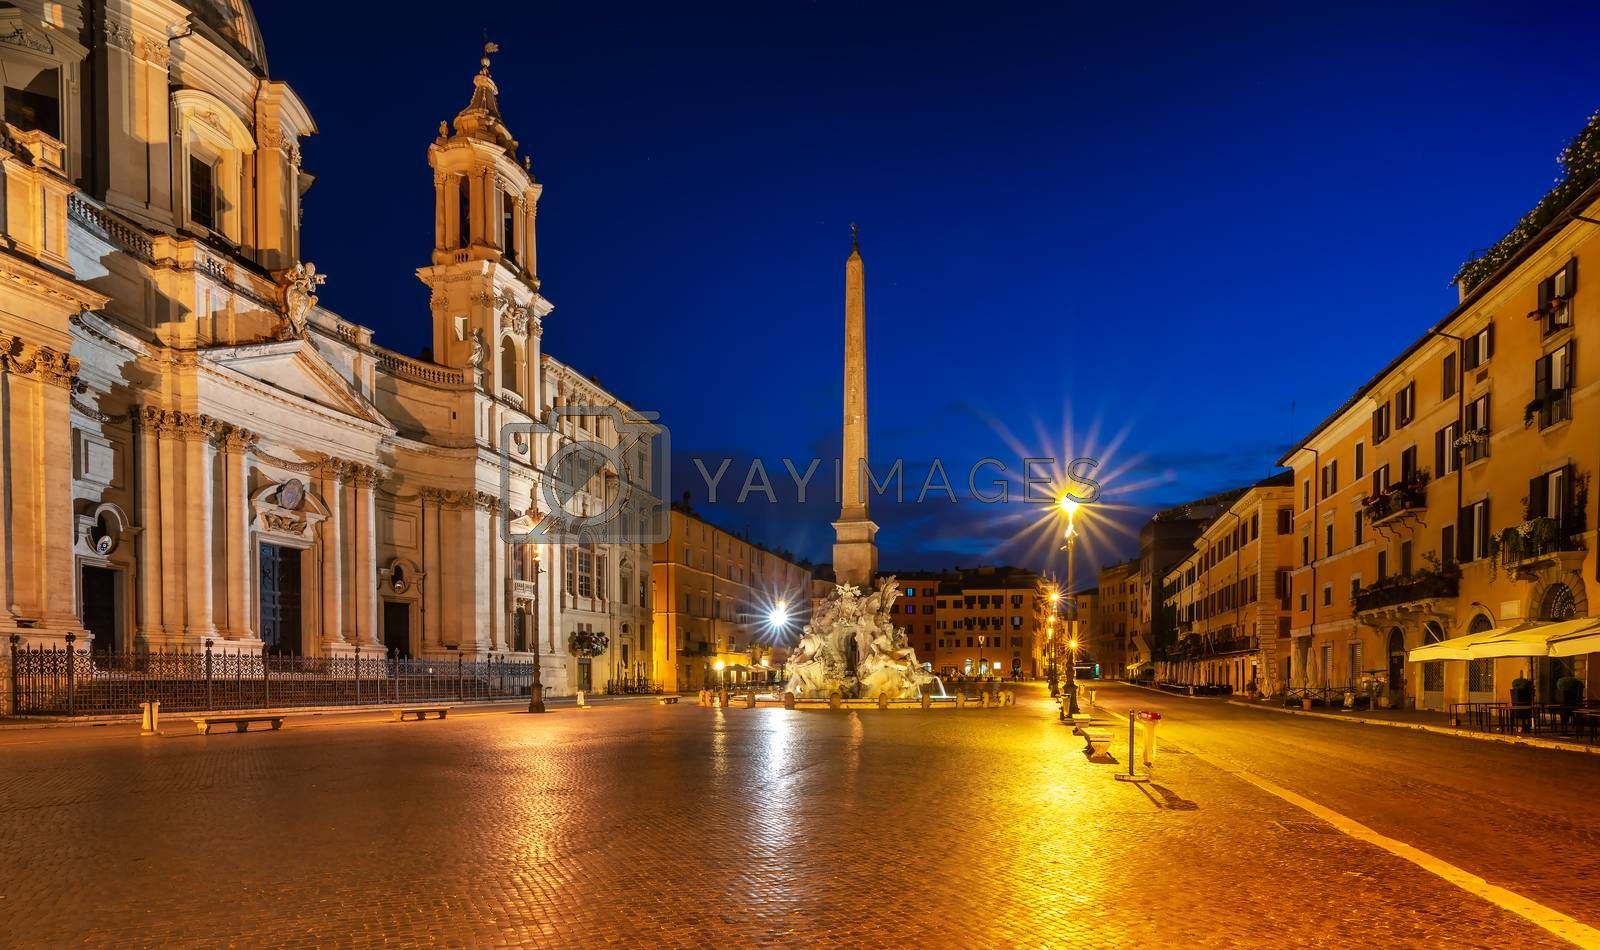 Piazza Navona in Italy by Givaga